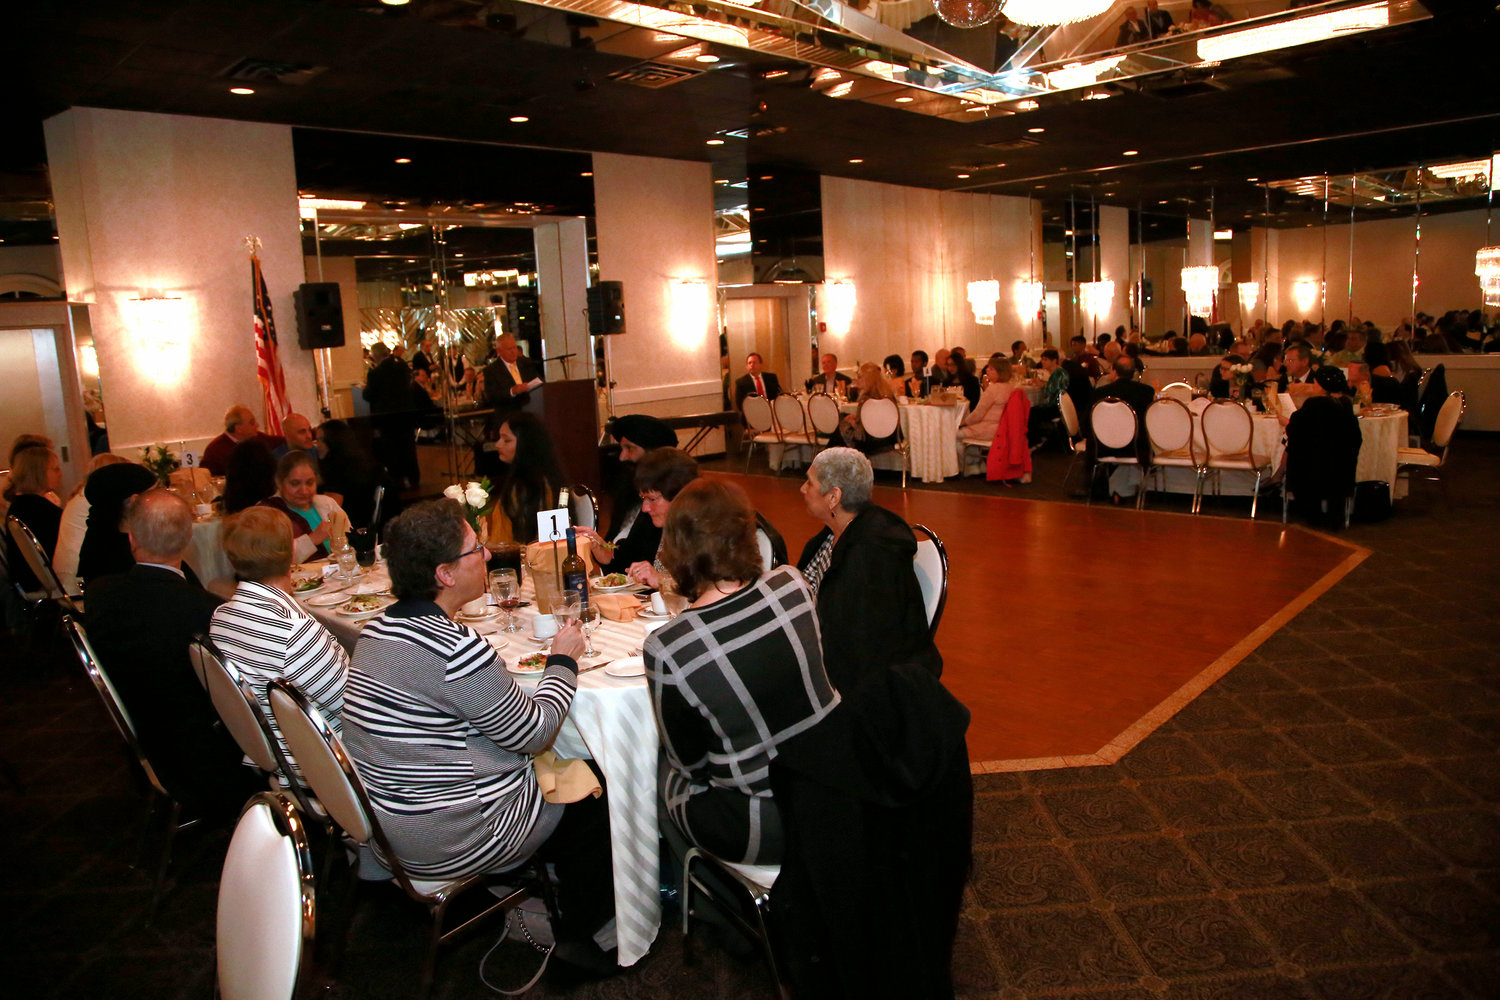 Numerous events were held at Pompei. Above, the West Hempstead Community Scholarship Fund's annual dinner in 2019.